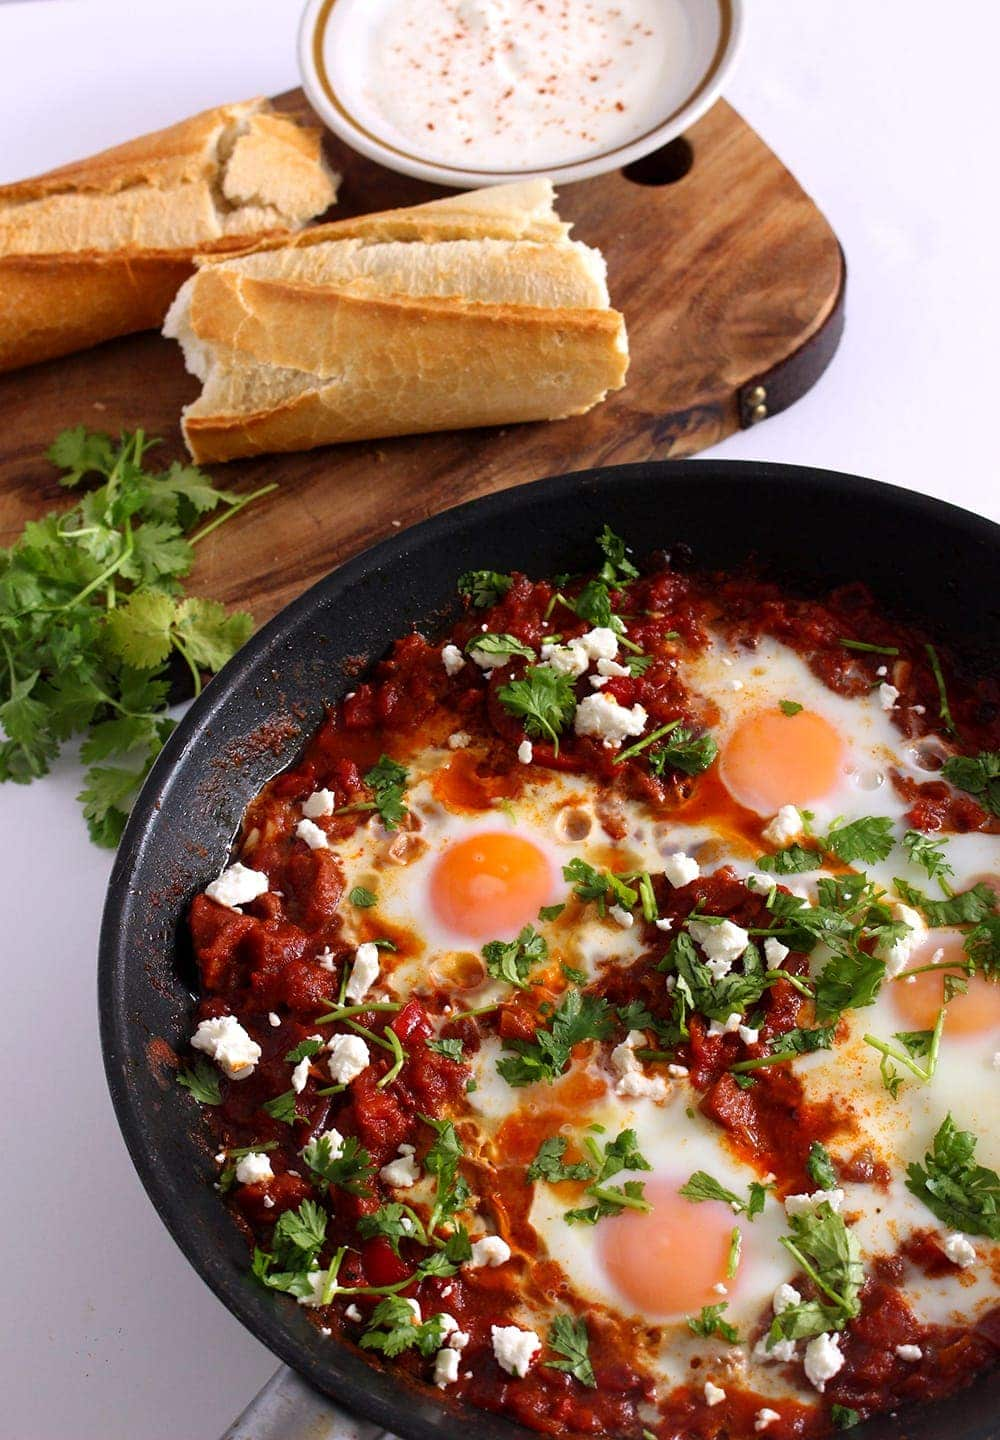 This chorizo shakshuka is full of smoky flavour from the chorizo and smoked paprika. Serve with crusty bread for those runny yolks and a dollop of yoghurt.